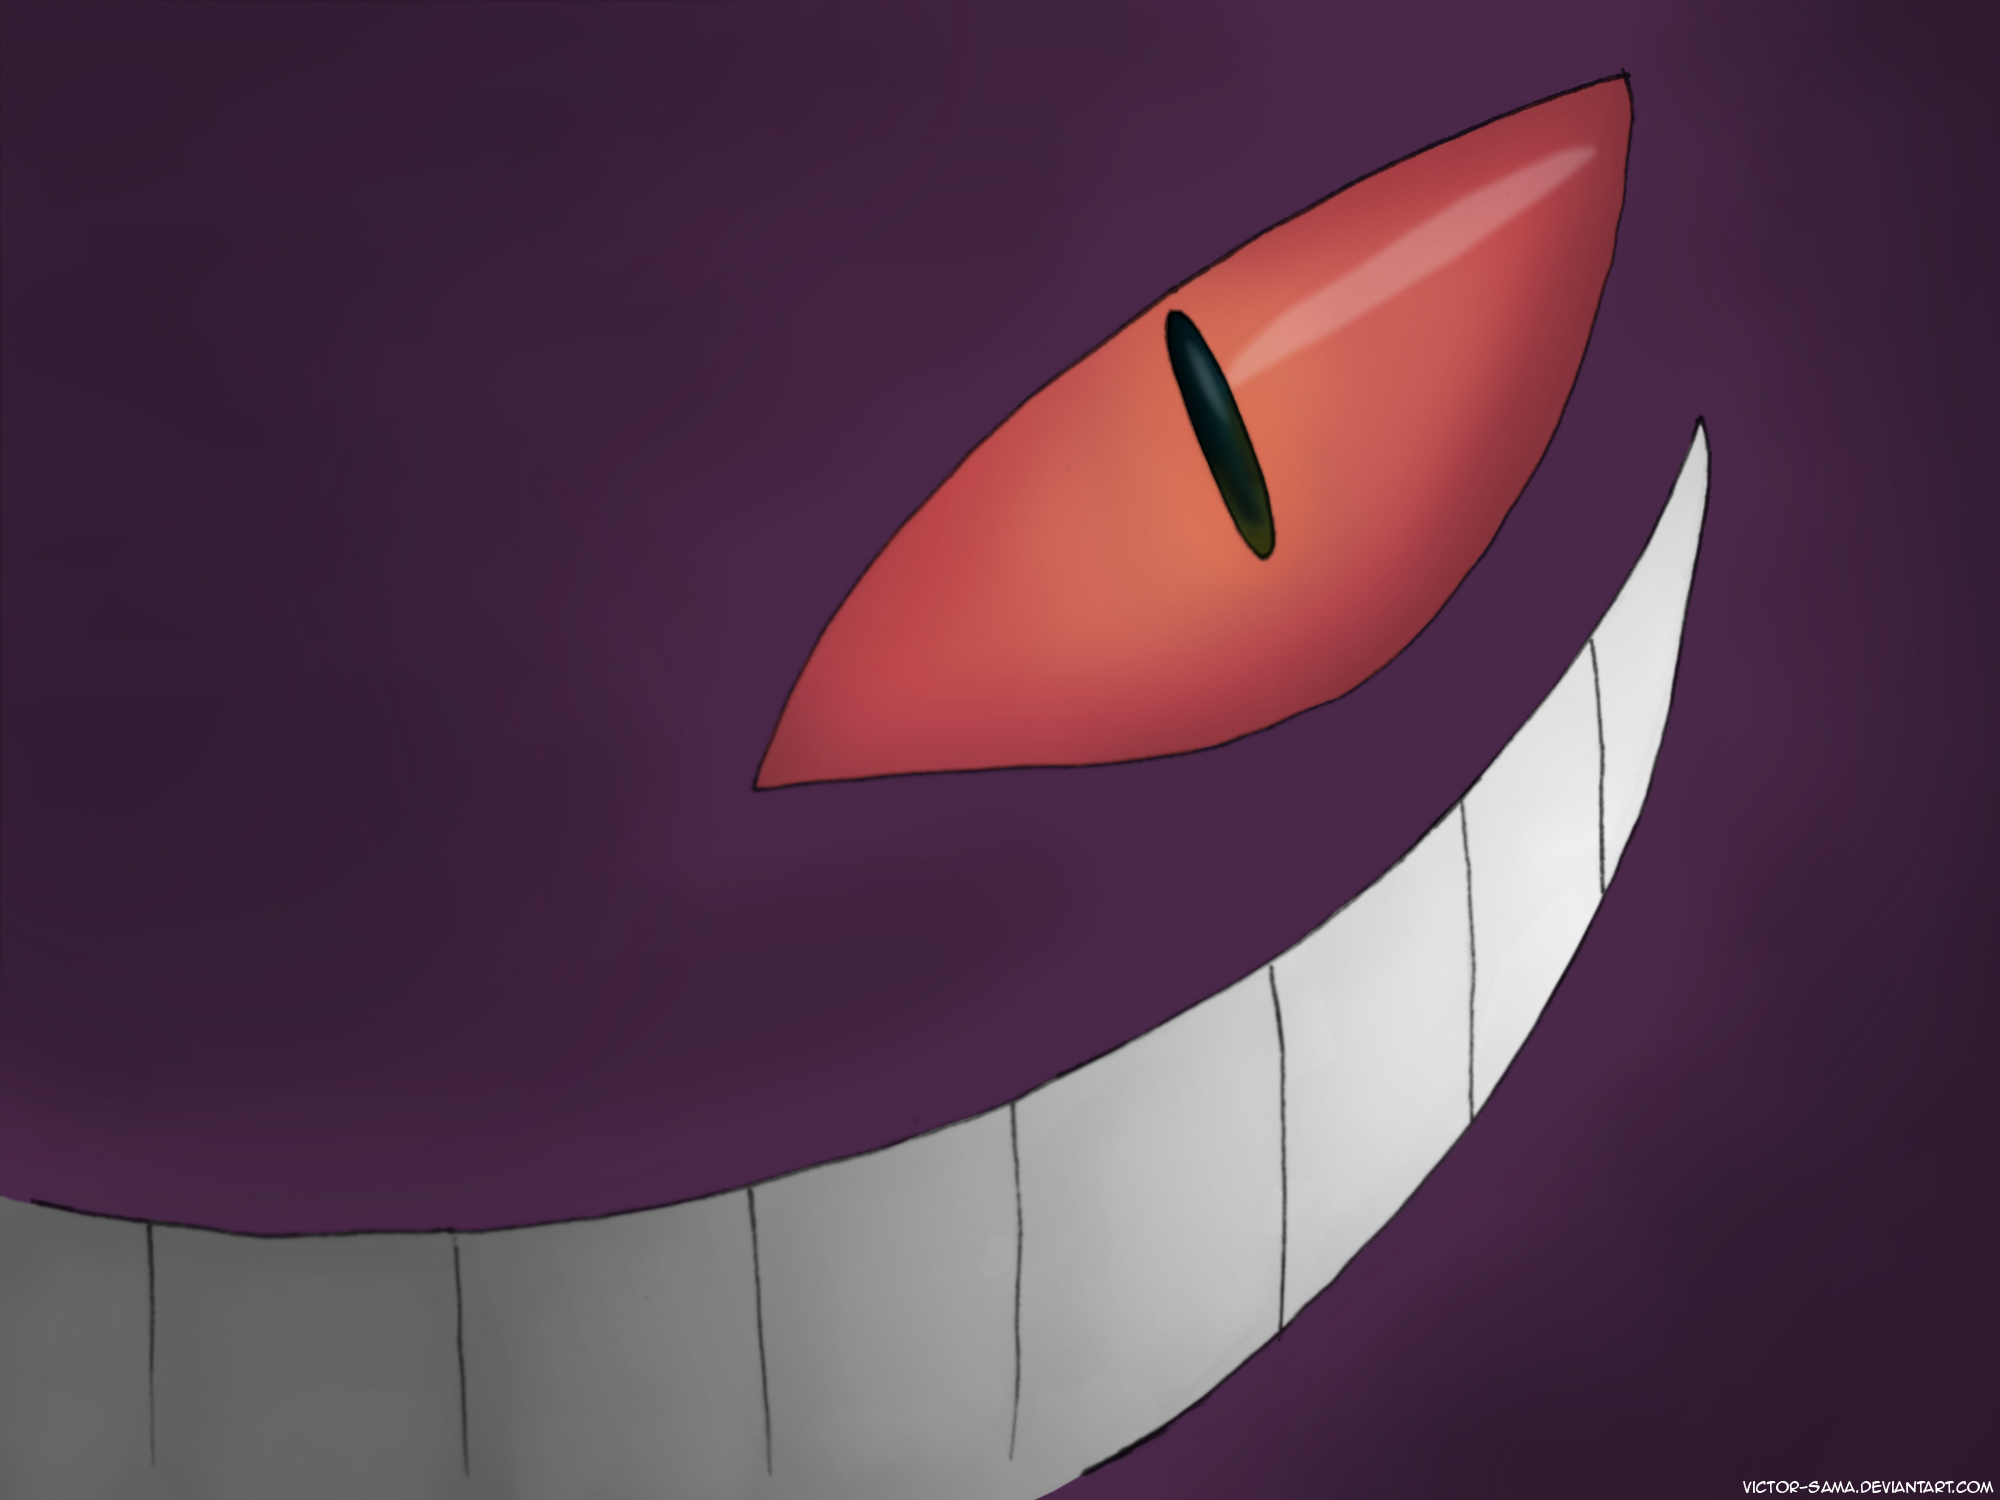 Gengar Wallpaper PicsWallpapercom 2000x1500